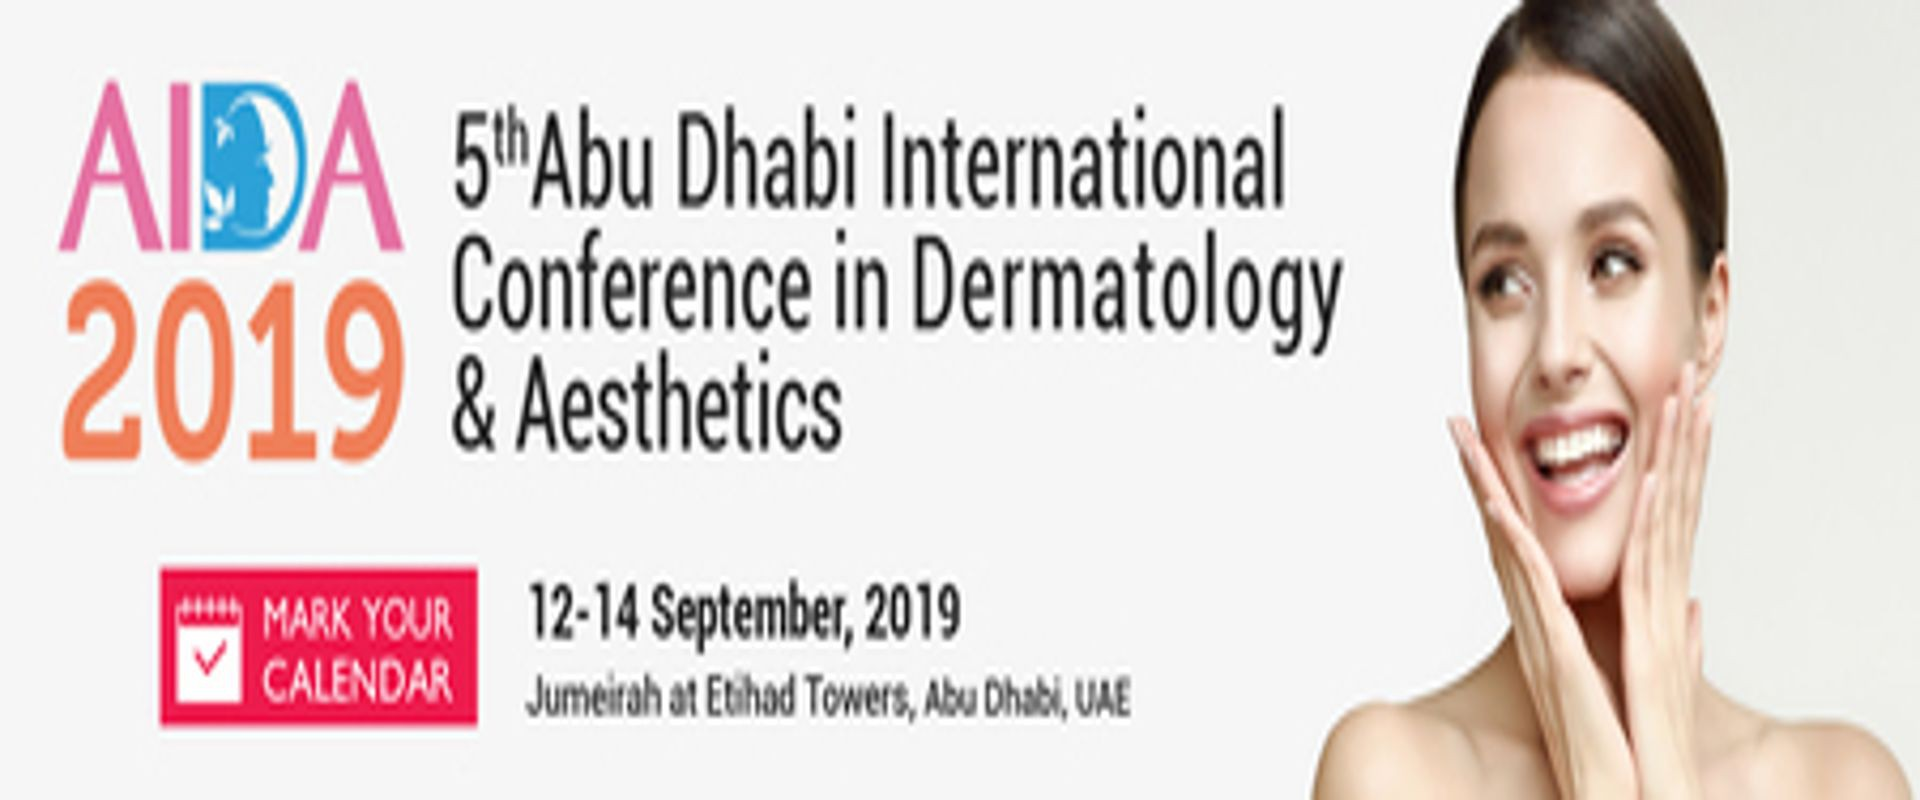 12 Sep 2019: 5th Abu Dhabi International Conference in